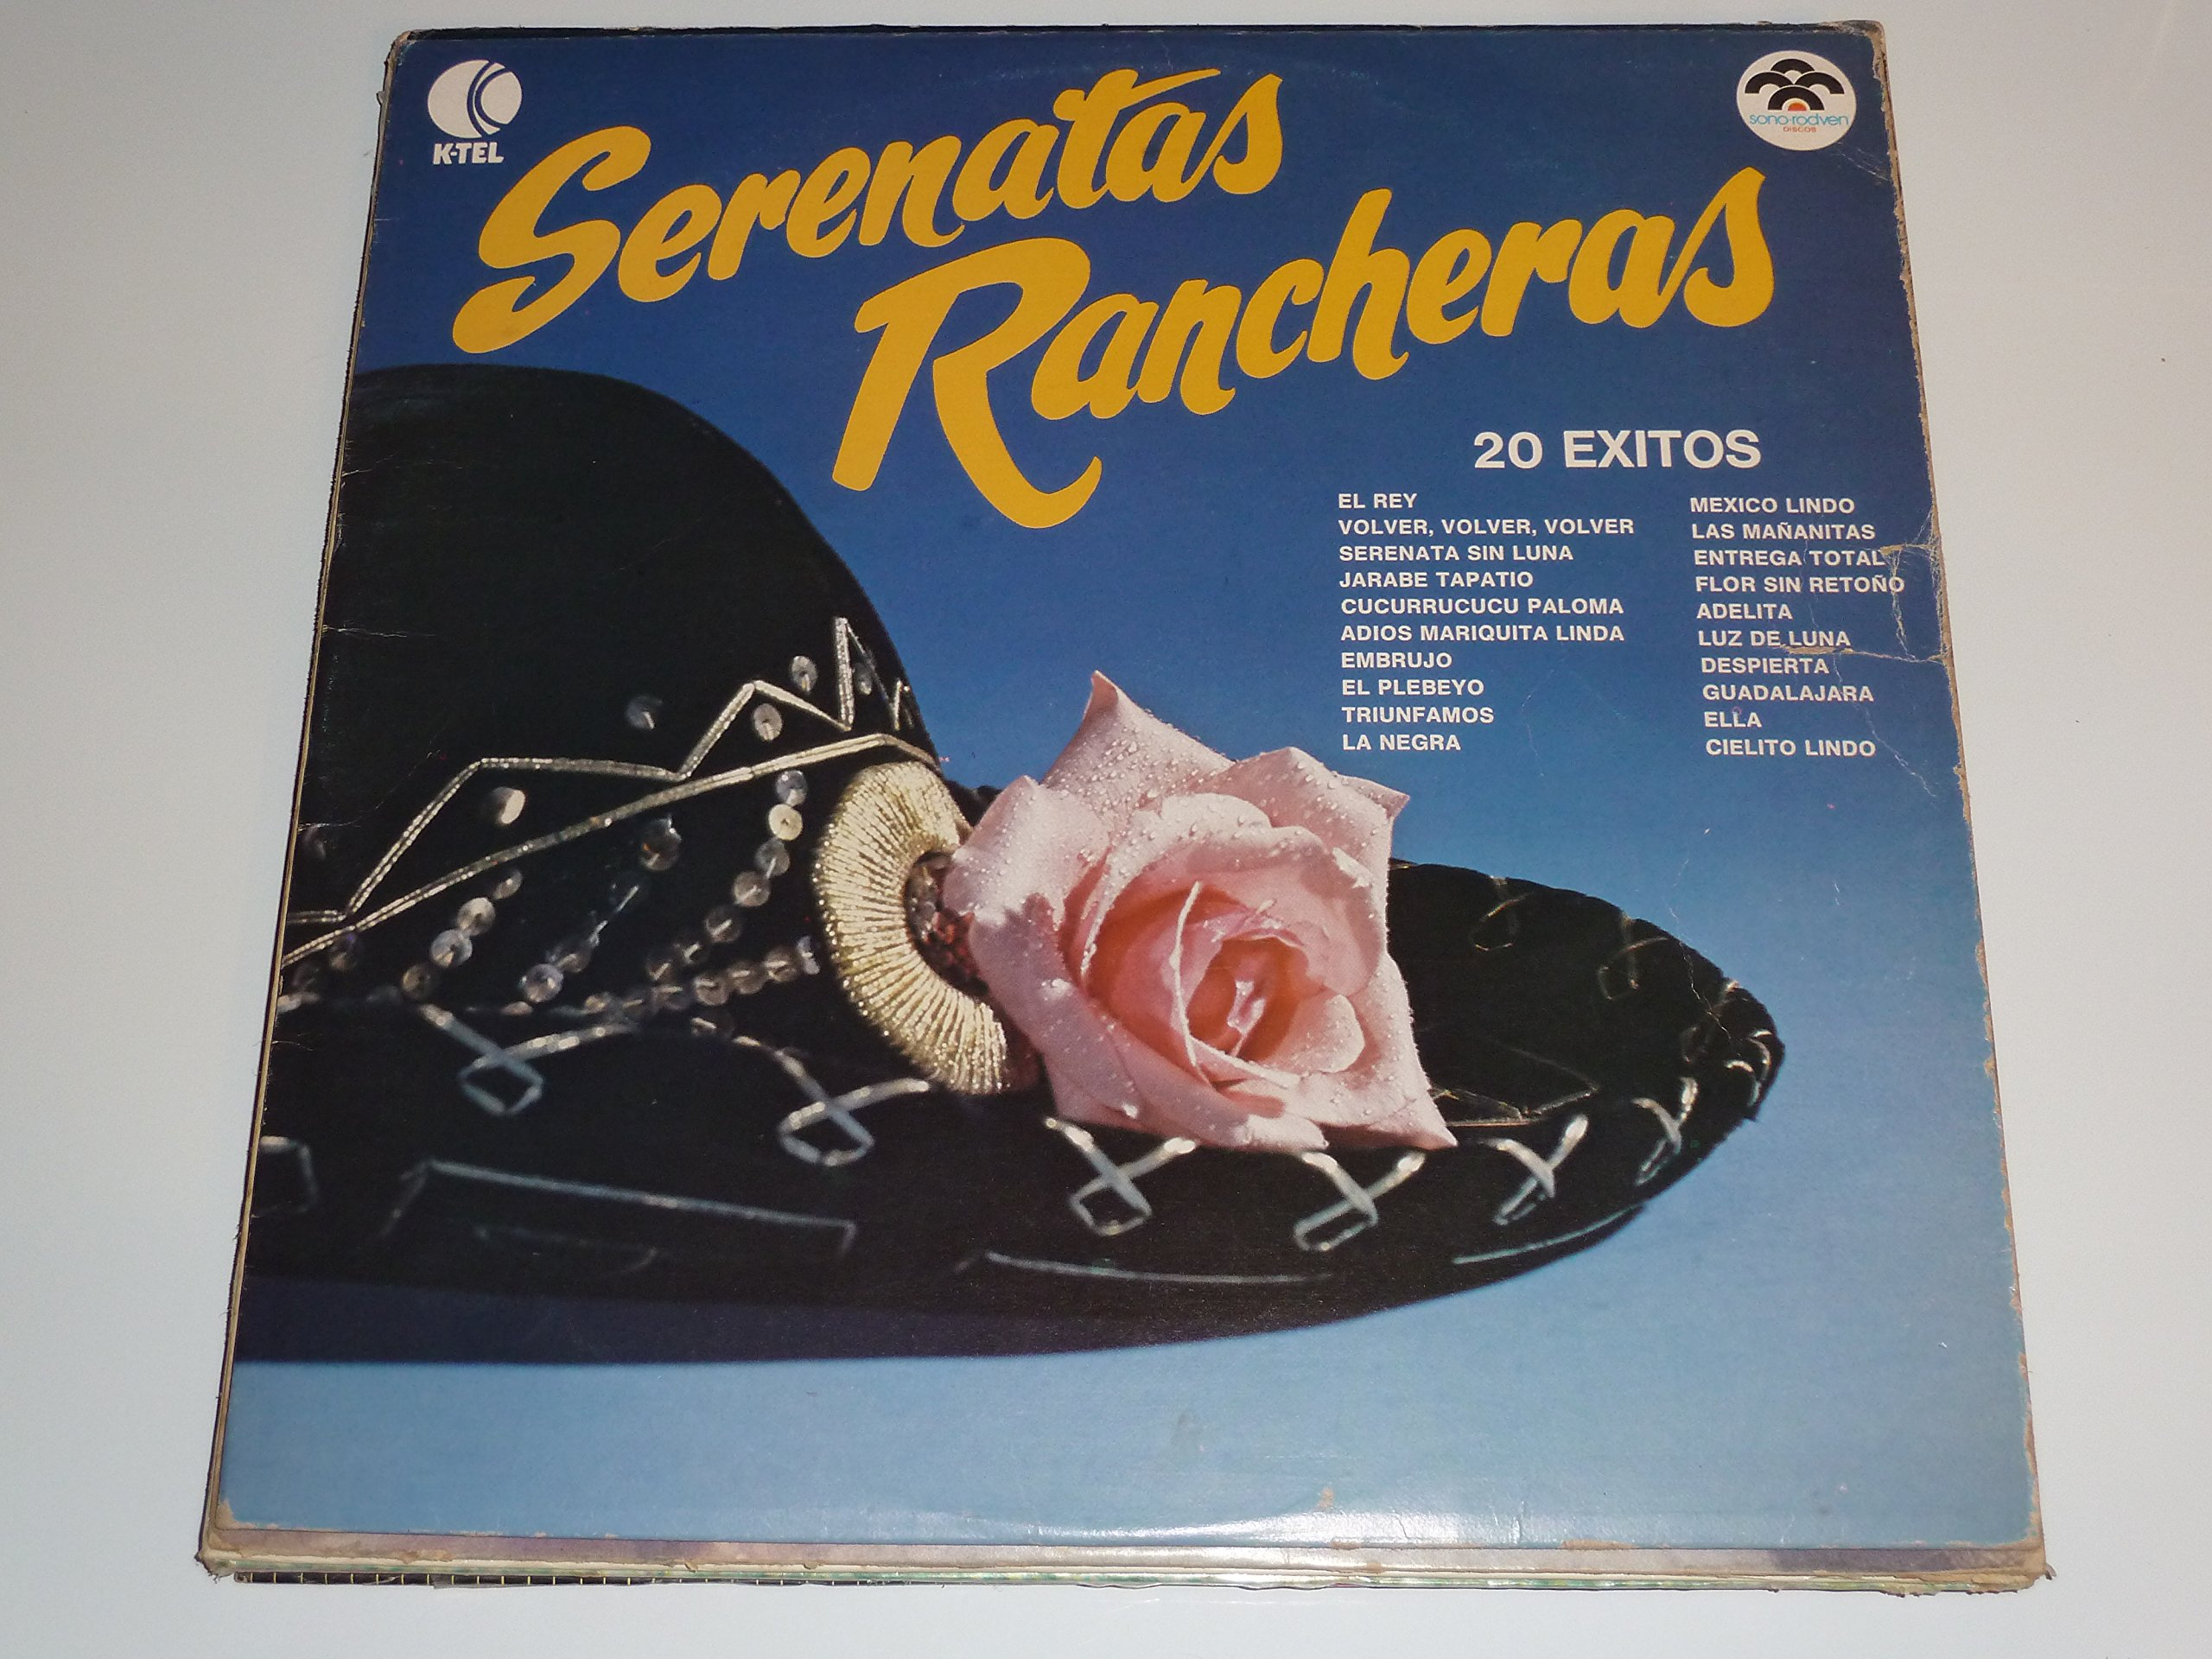 Serenatas Rancheras 20 Exitos by SONO-RODVEN